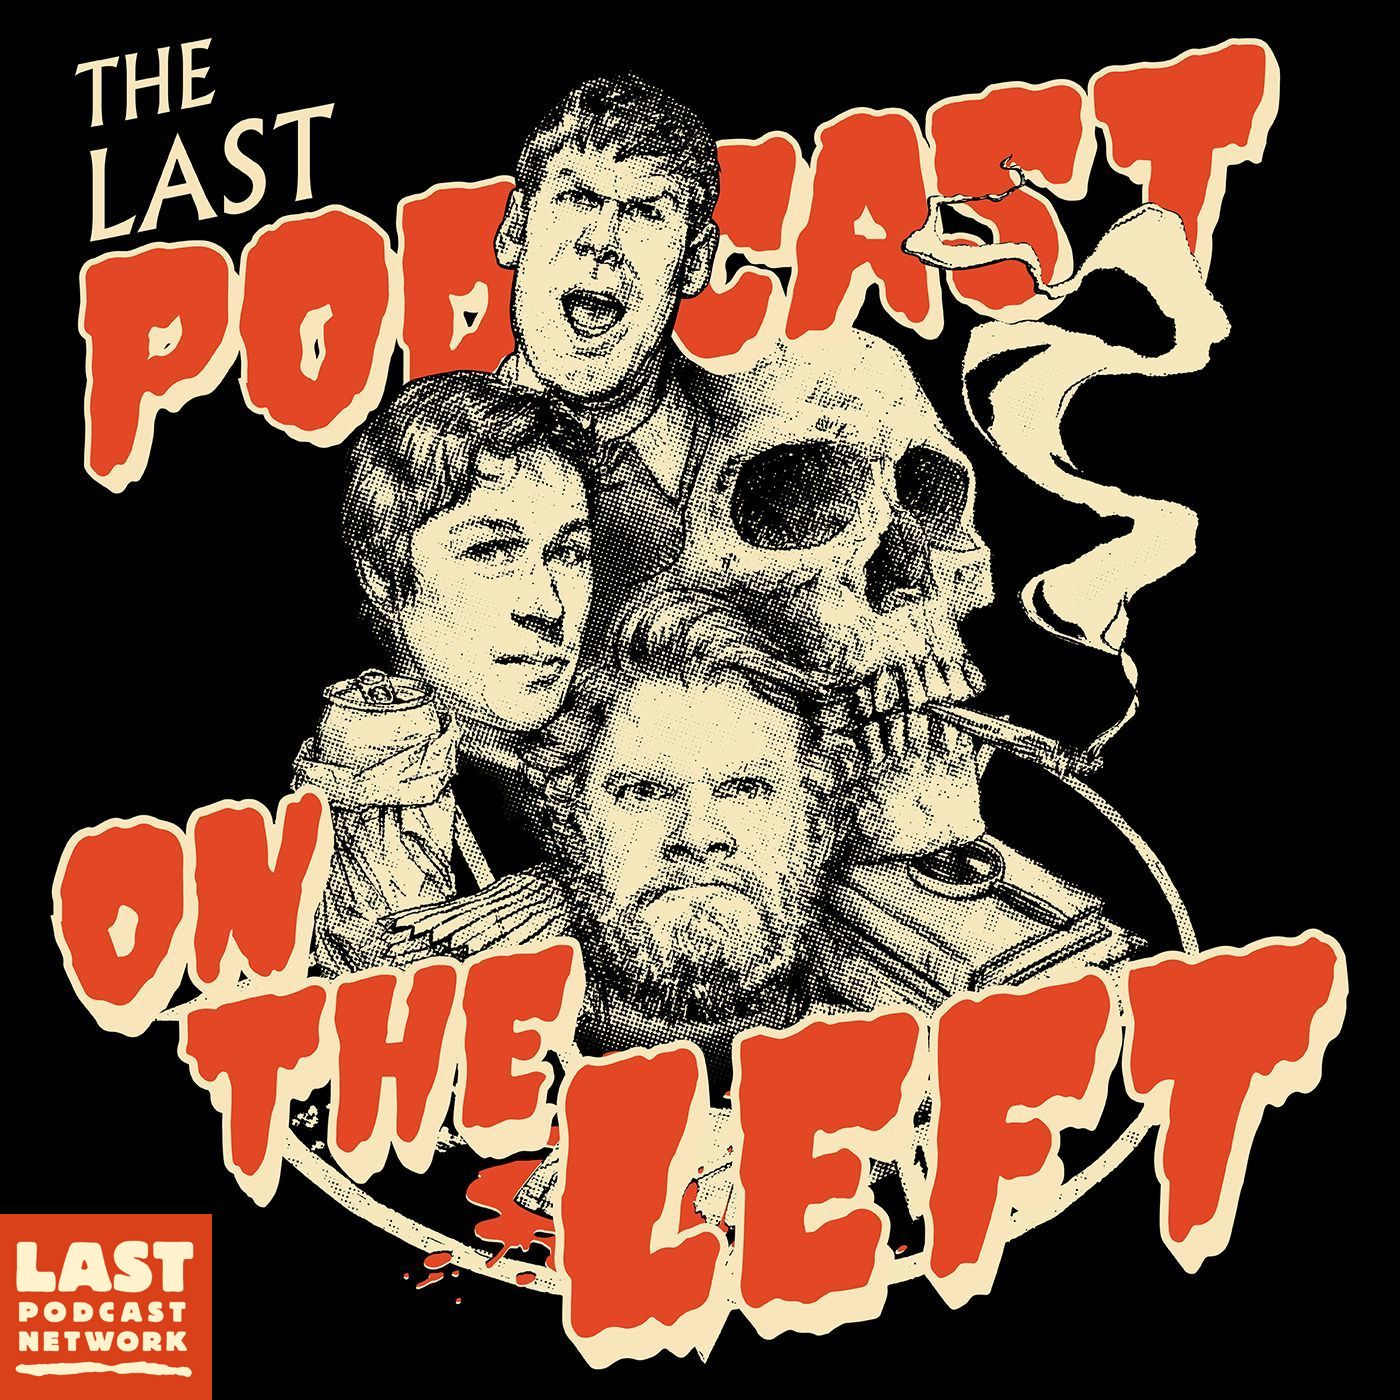 The Last Podcast Network